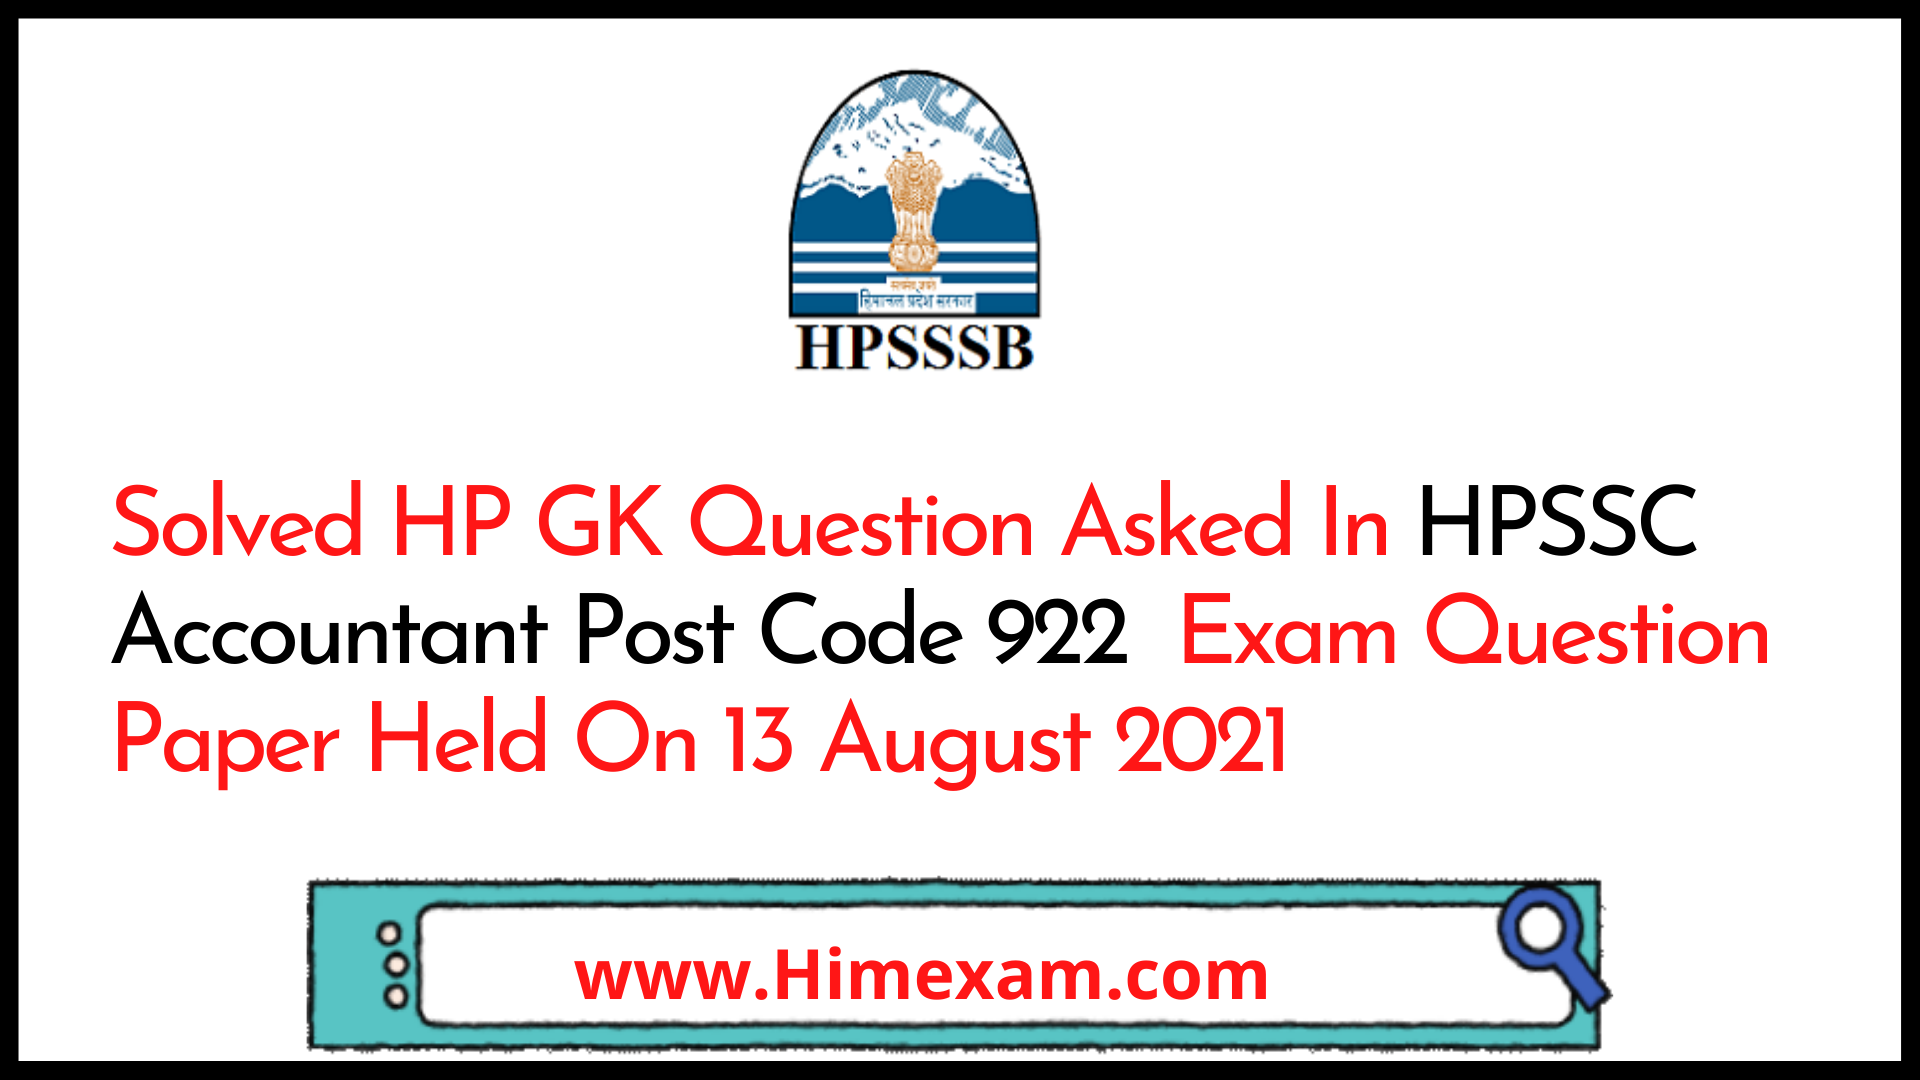 Solved HP GK Question Asked In HPSSC Accountant Post Code 922  Exam Question Paper Held On 13 August 2021